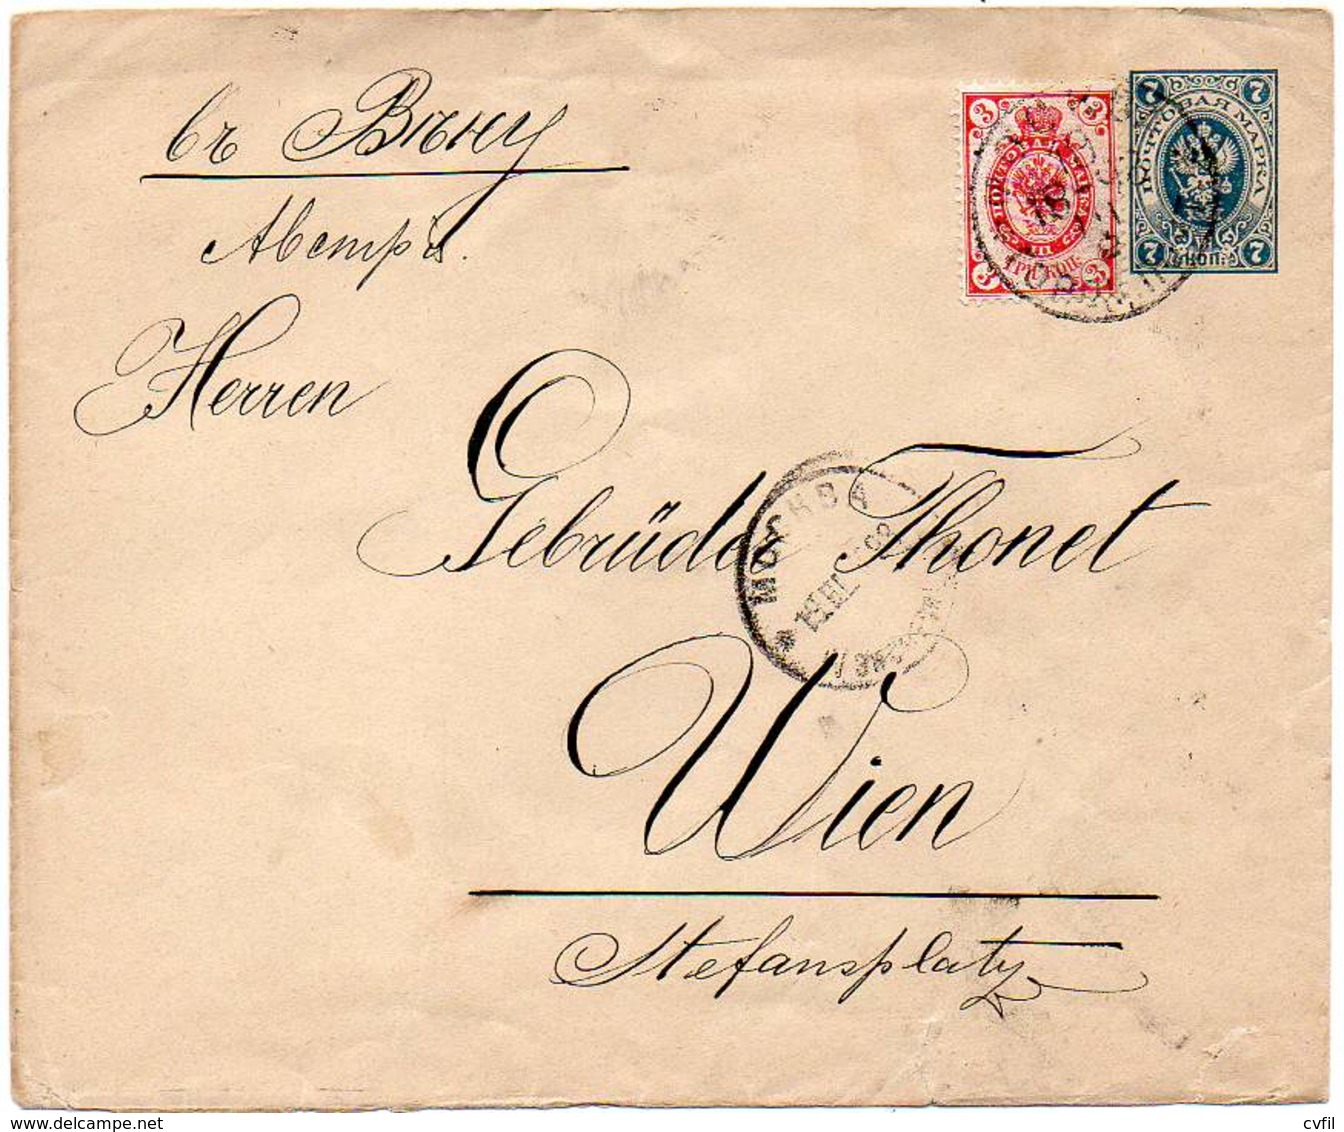 RUSSIA 1898 - ENTIRE ENVELOPE Of 7 KOPECS With Additional Postage From Moscow To Wien, Austria - 1857-1916 Empire